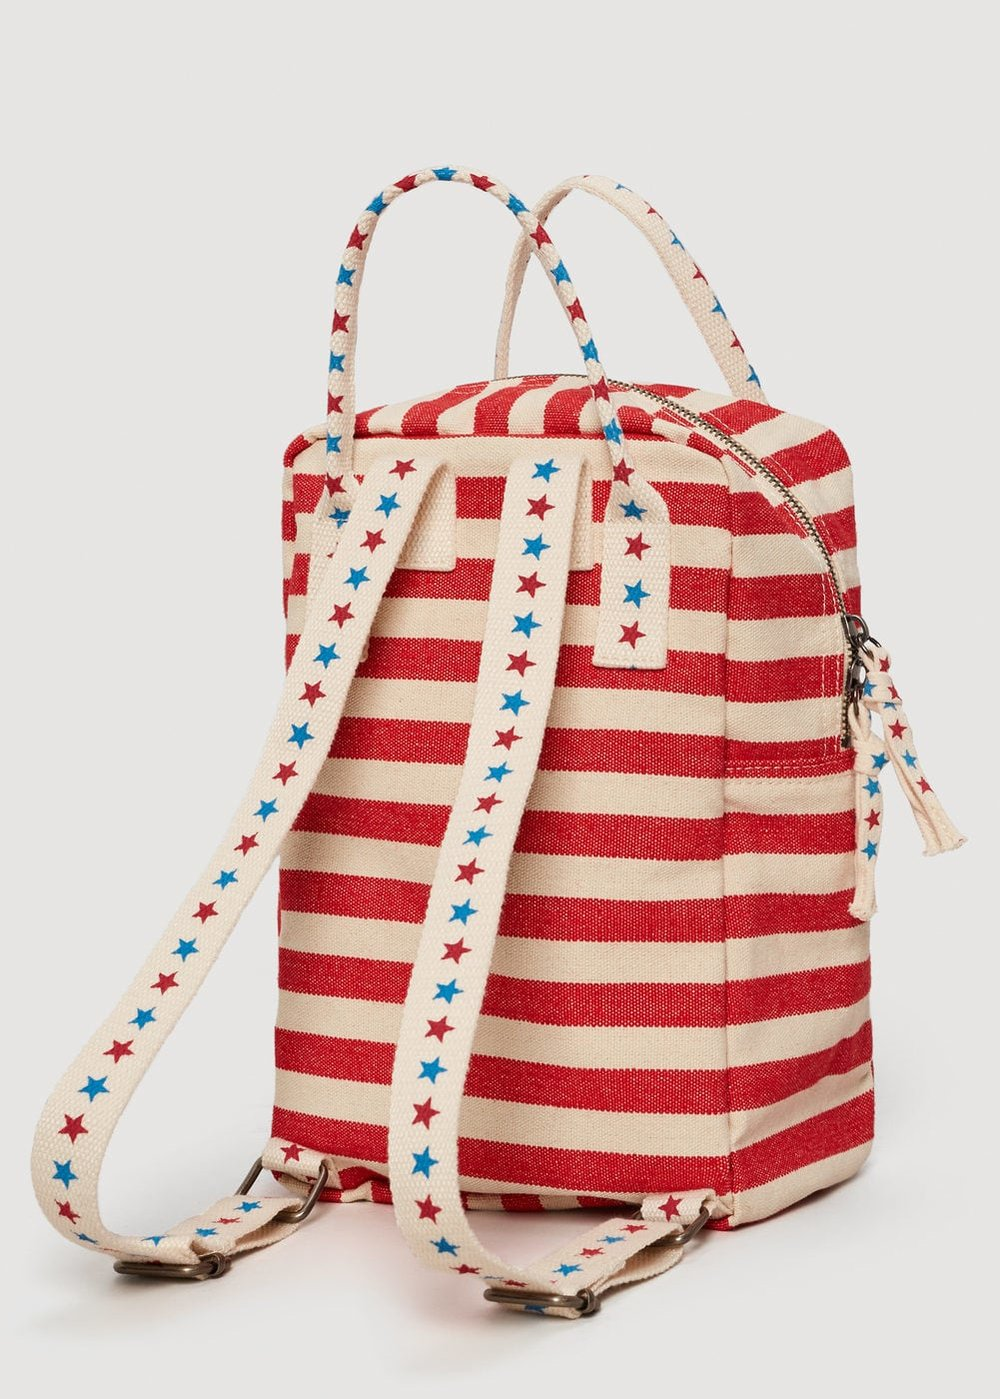 Mango Kids Striped Canvas Backpack, $39.99-.jpg